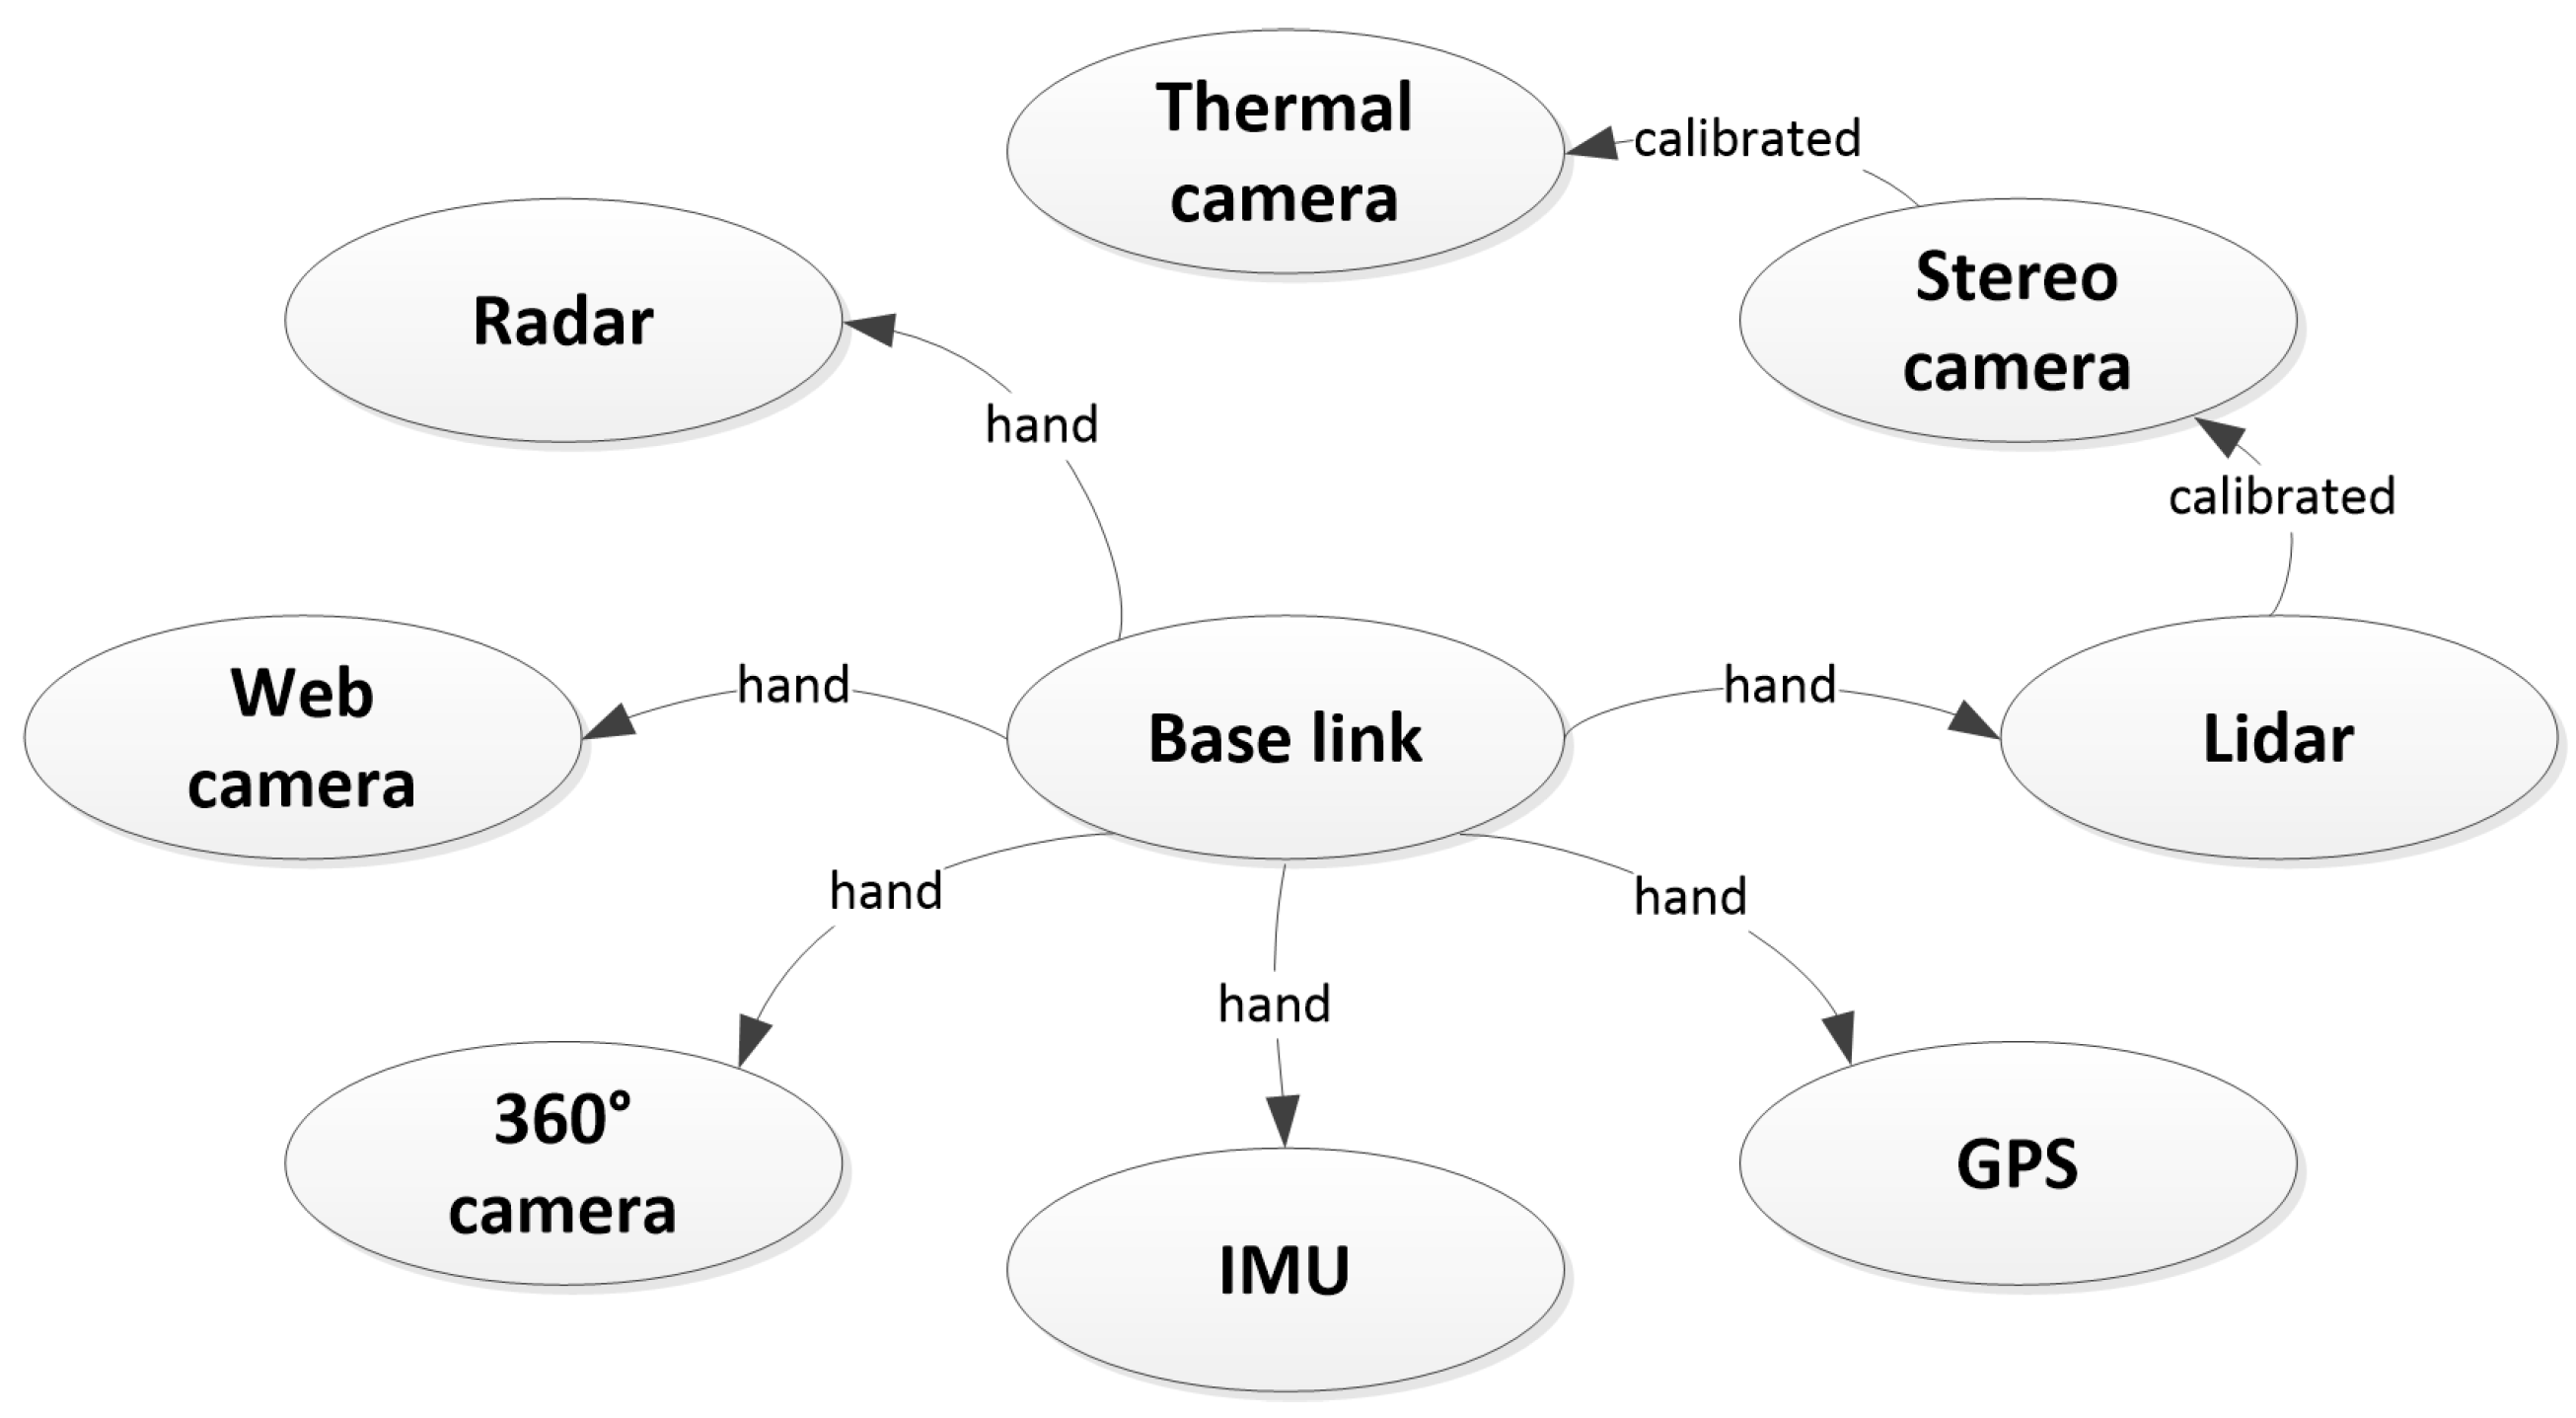 Sensors Free Full Text Fieldsafe Dataset For Obstacle Detection Camera Diagram Labeled Related Keywords 17 02579 G004 Figure 4